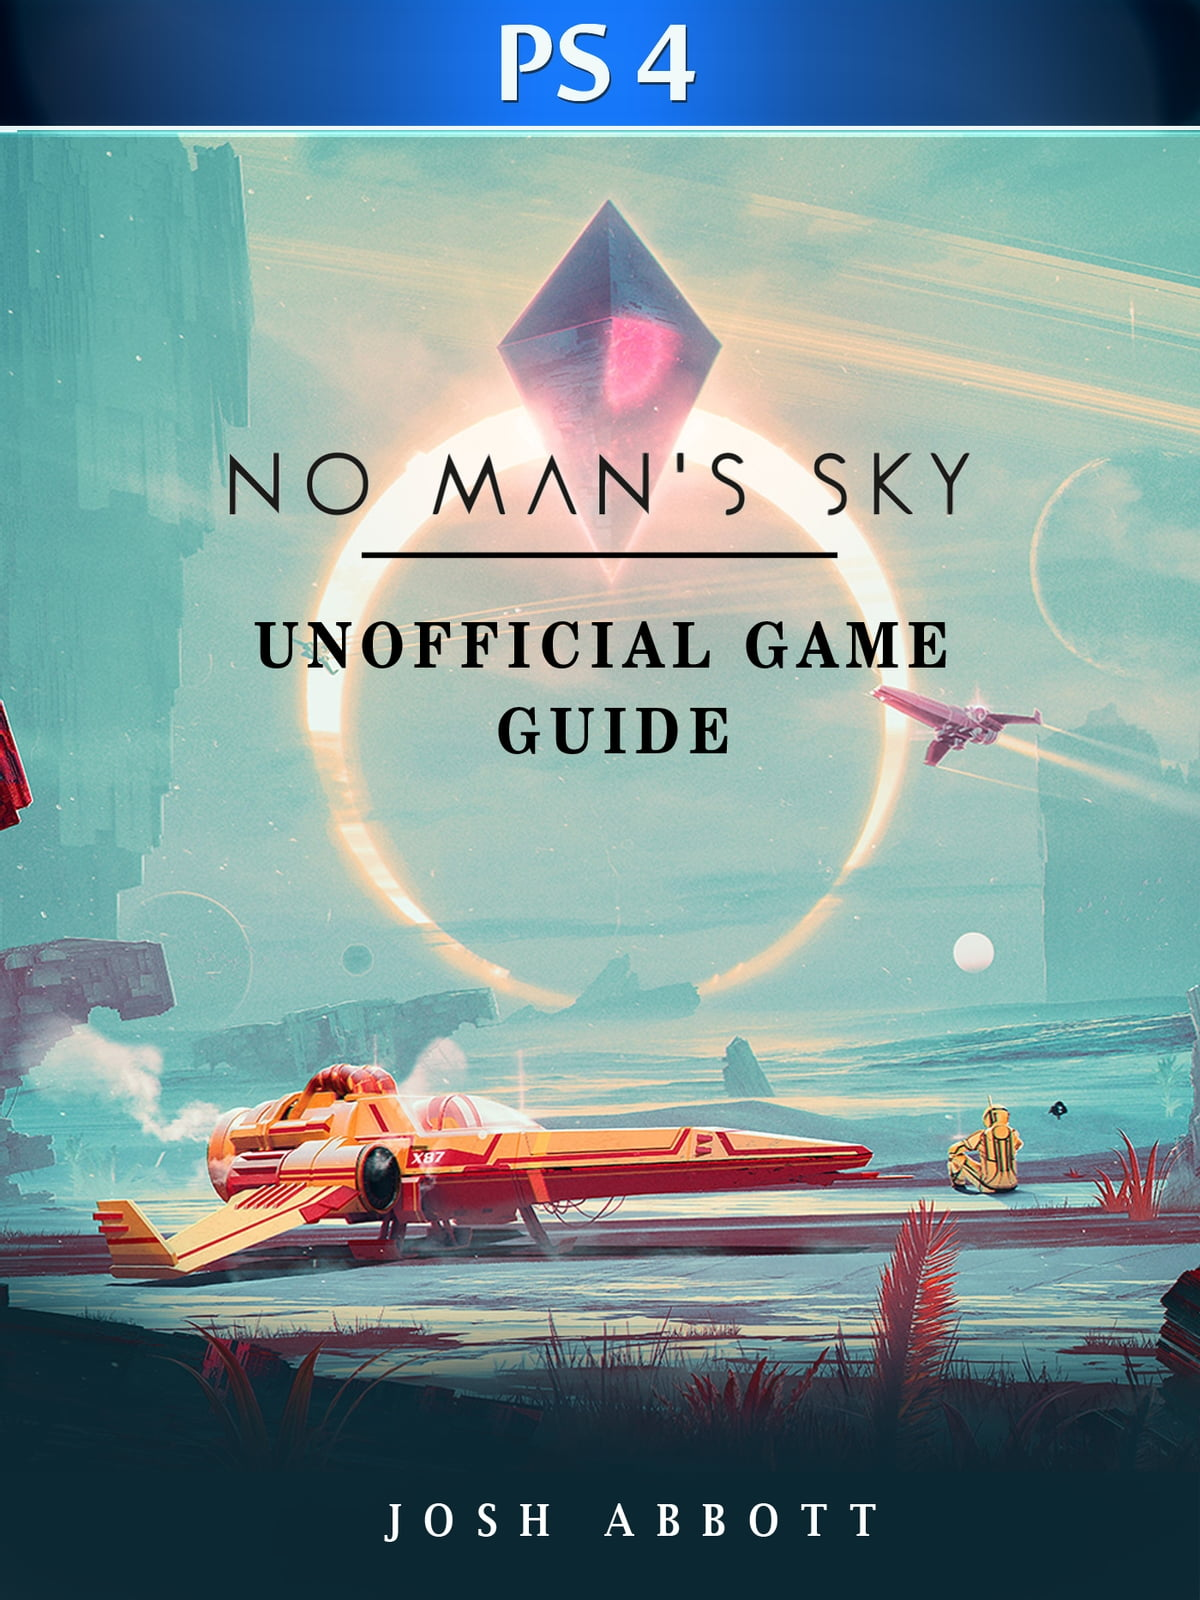 No Mans Sky PS4 Unofficial Game Guide ebook by Josh Abbott - Rakuten Kobo